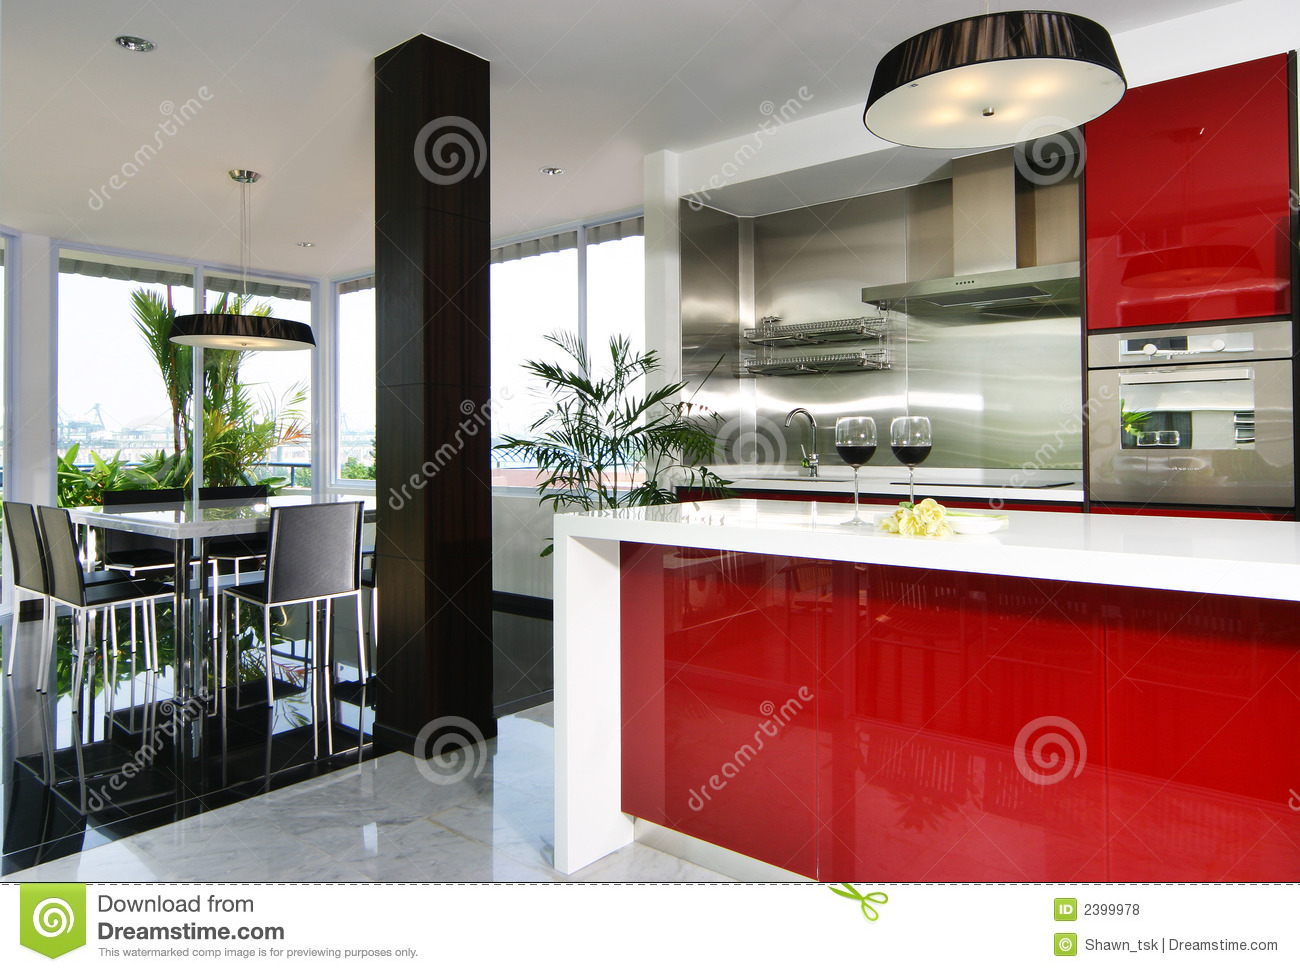 Interior design kitchen stock photo image of gloss for Interior designs photos